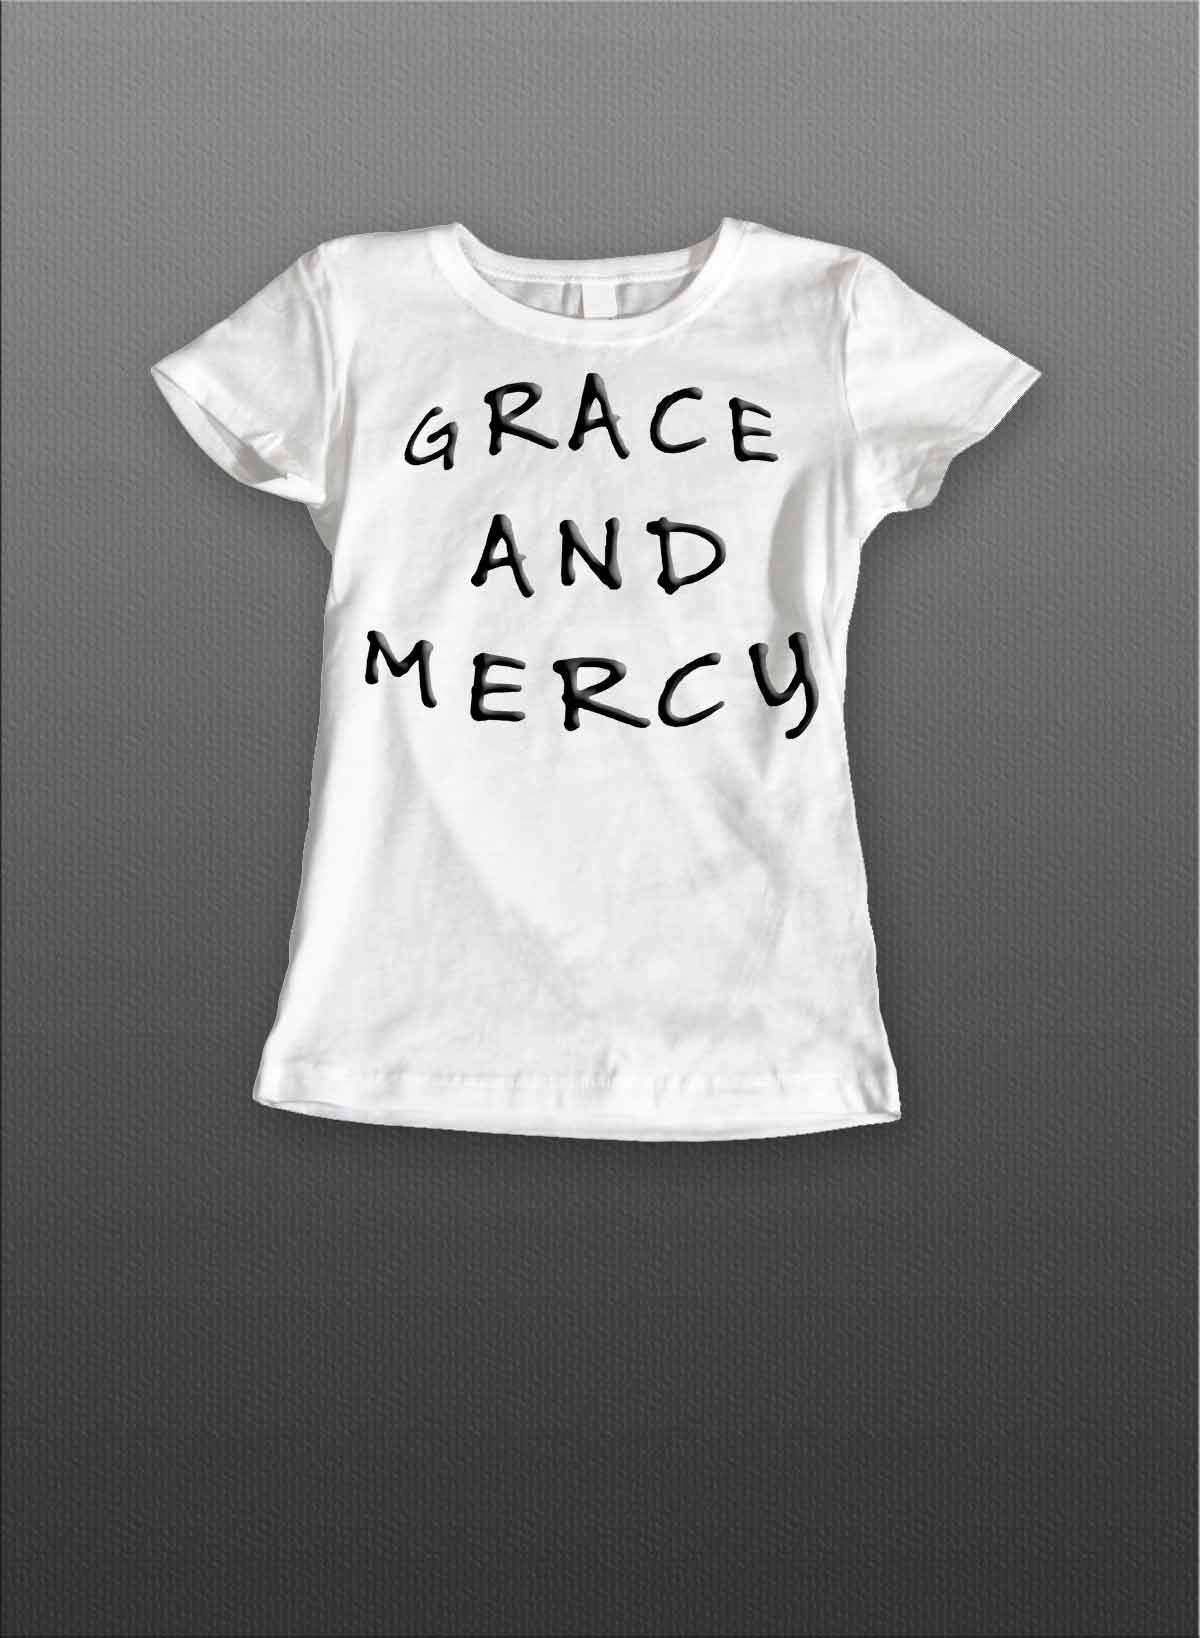 Grace and Mercy Ladies Tee (Black)